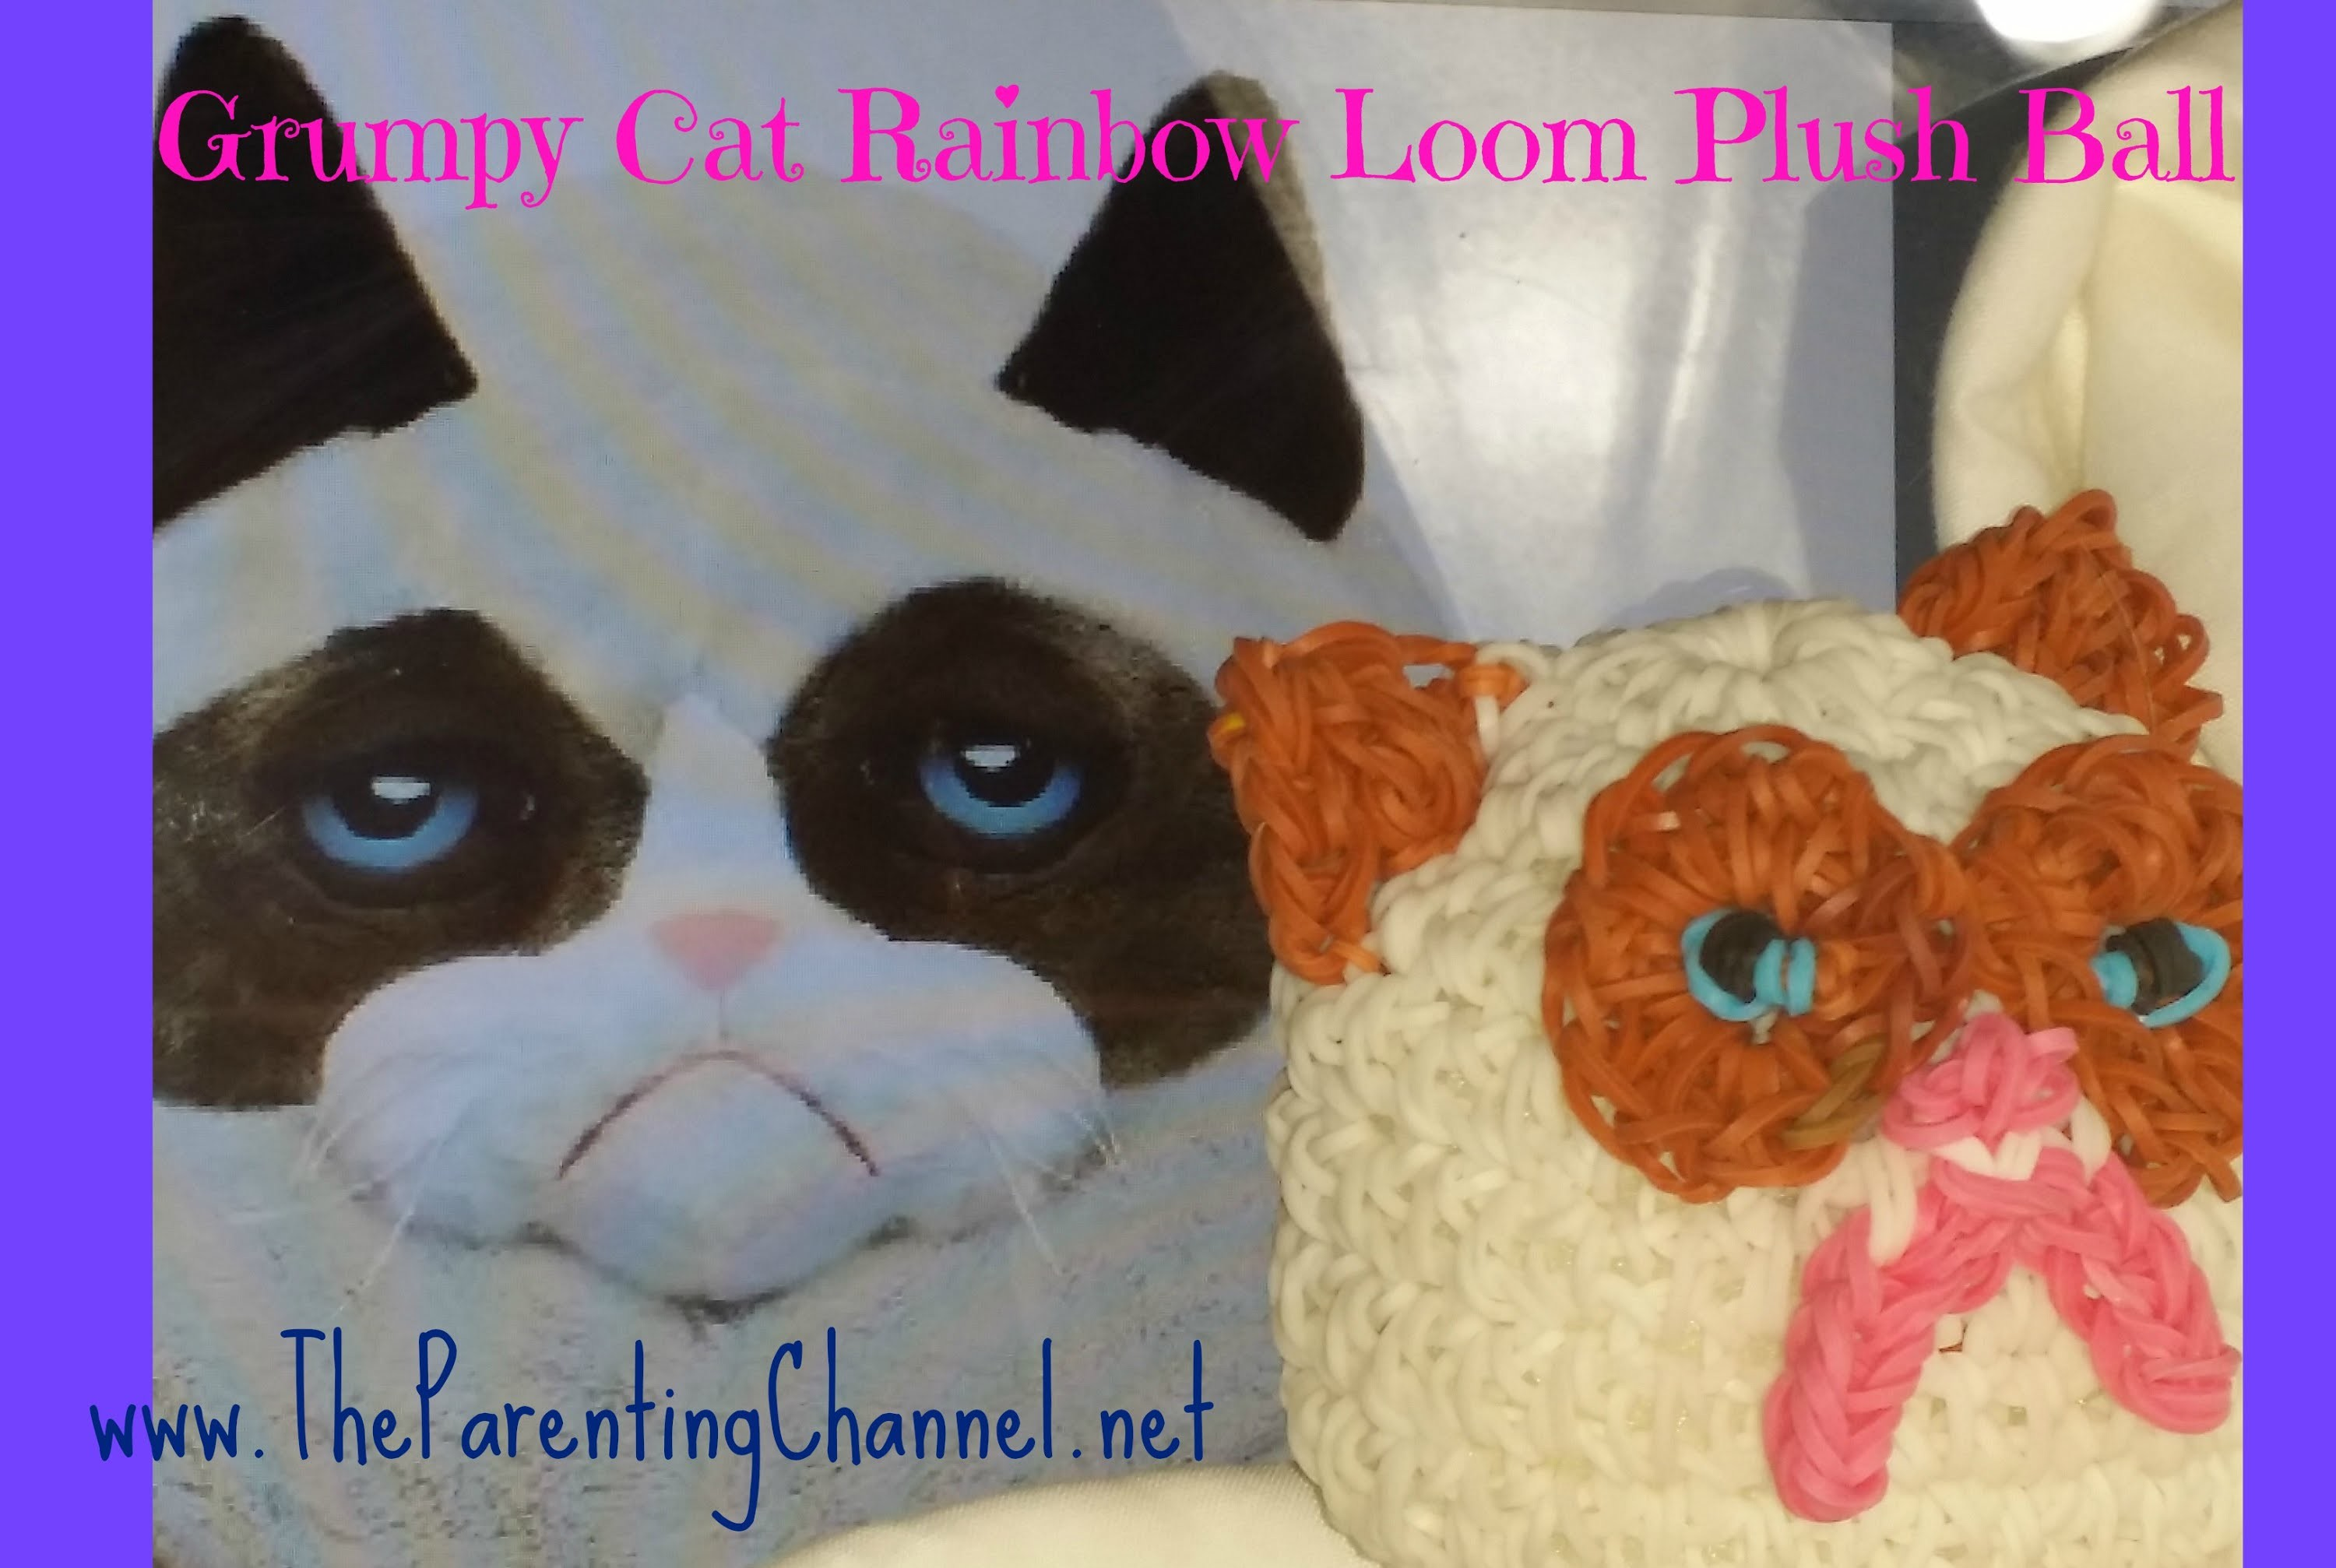 RAINBOW LOOM GRUMPY CAT PLUSH BALL GANZ